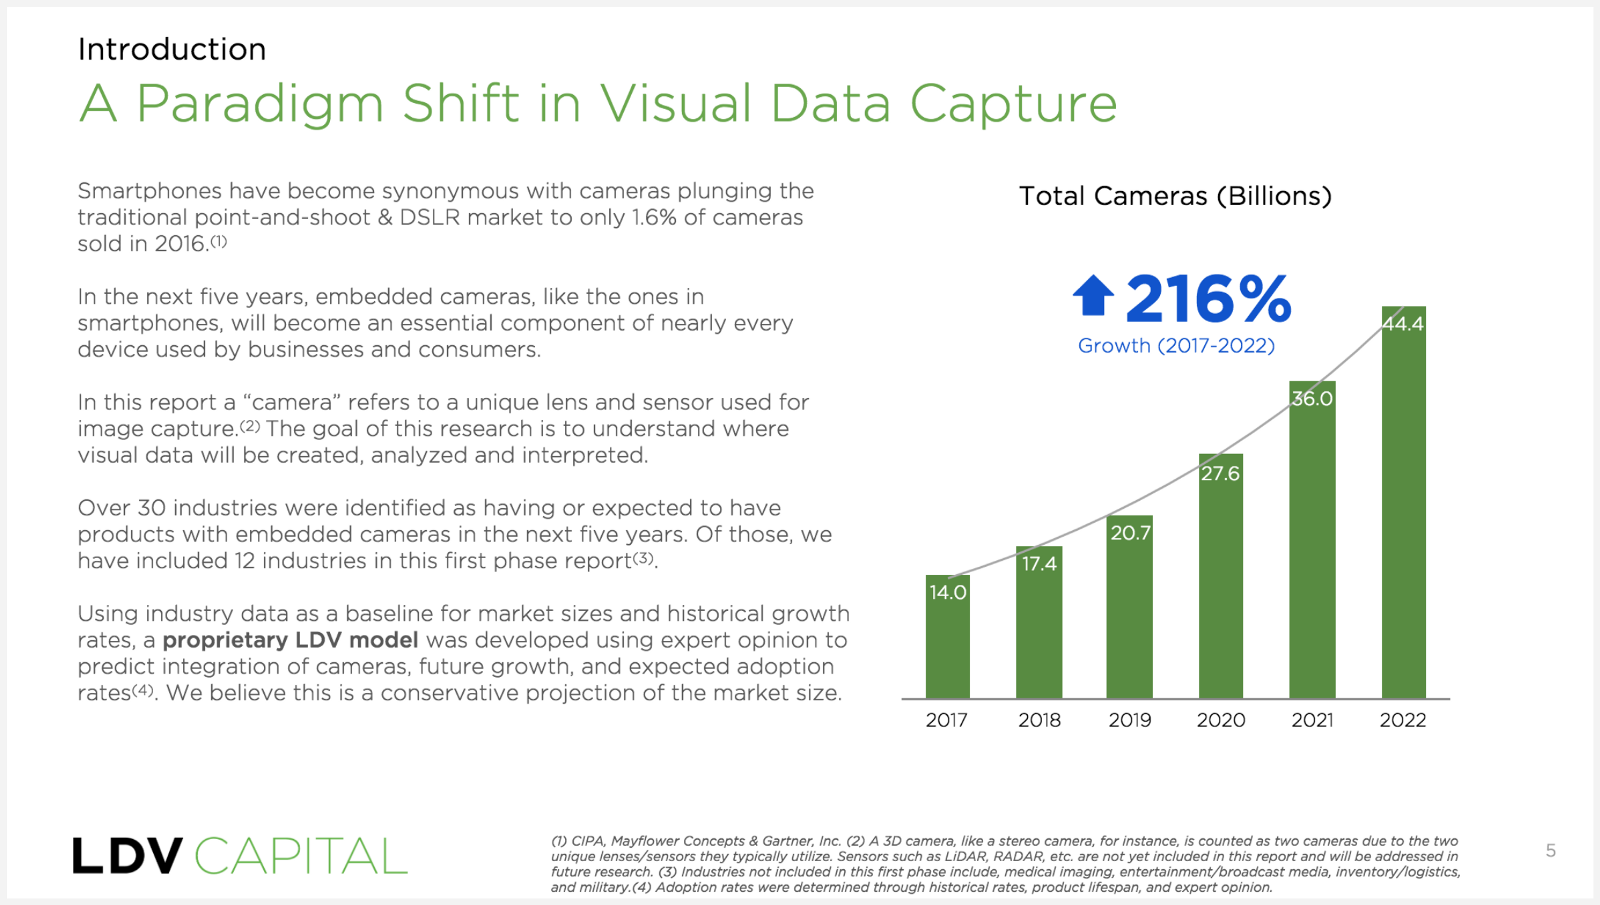 Picture of a slide from LDV Capital's presentation titled: A Paradigm Shift in Visual Data Capture